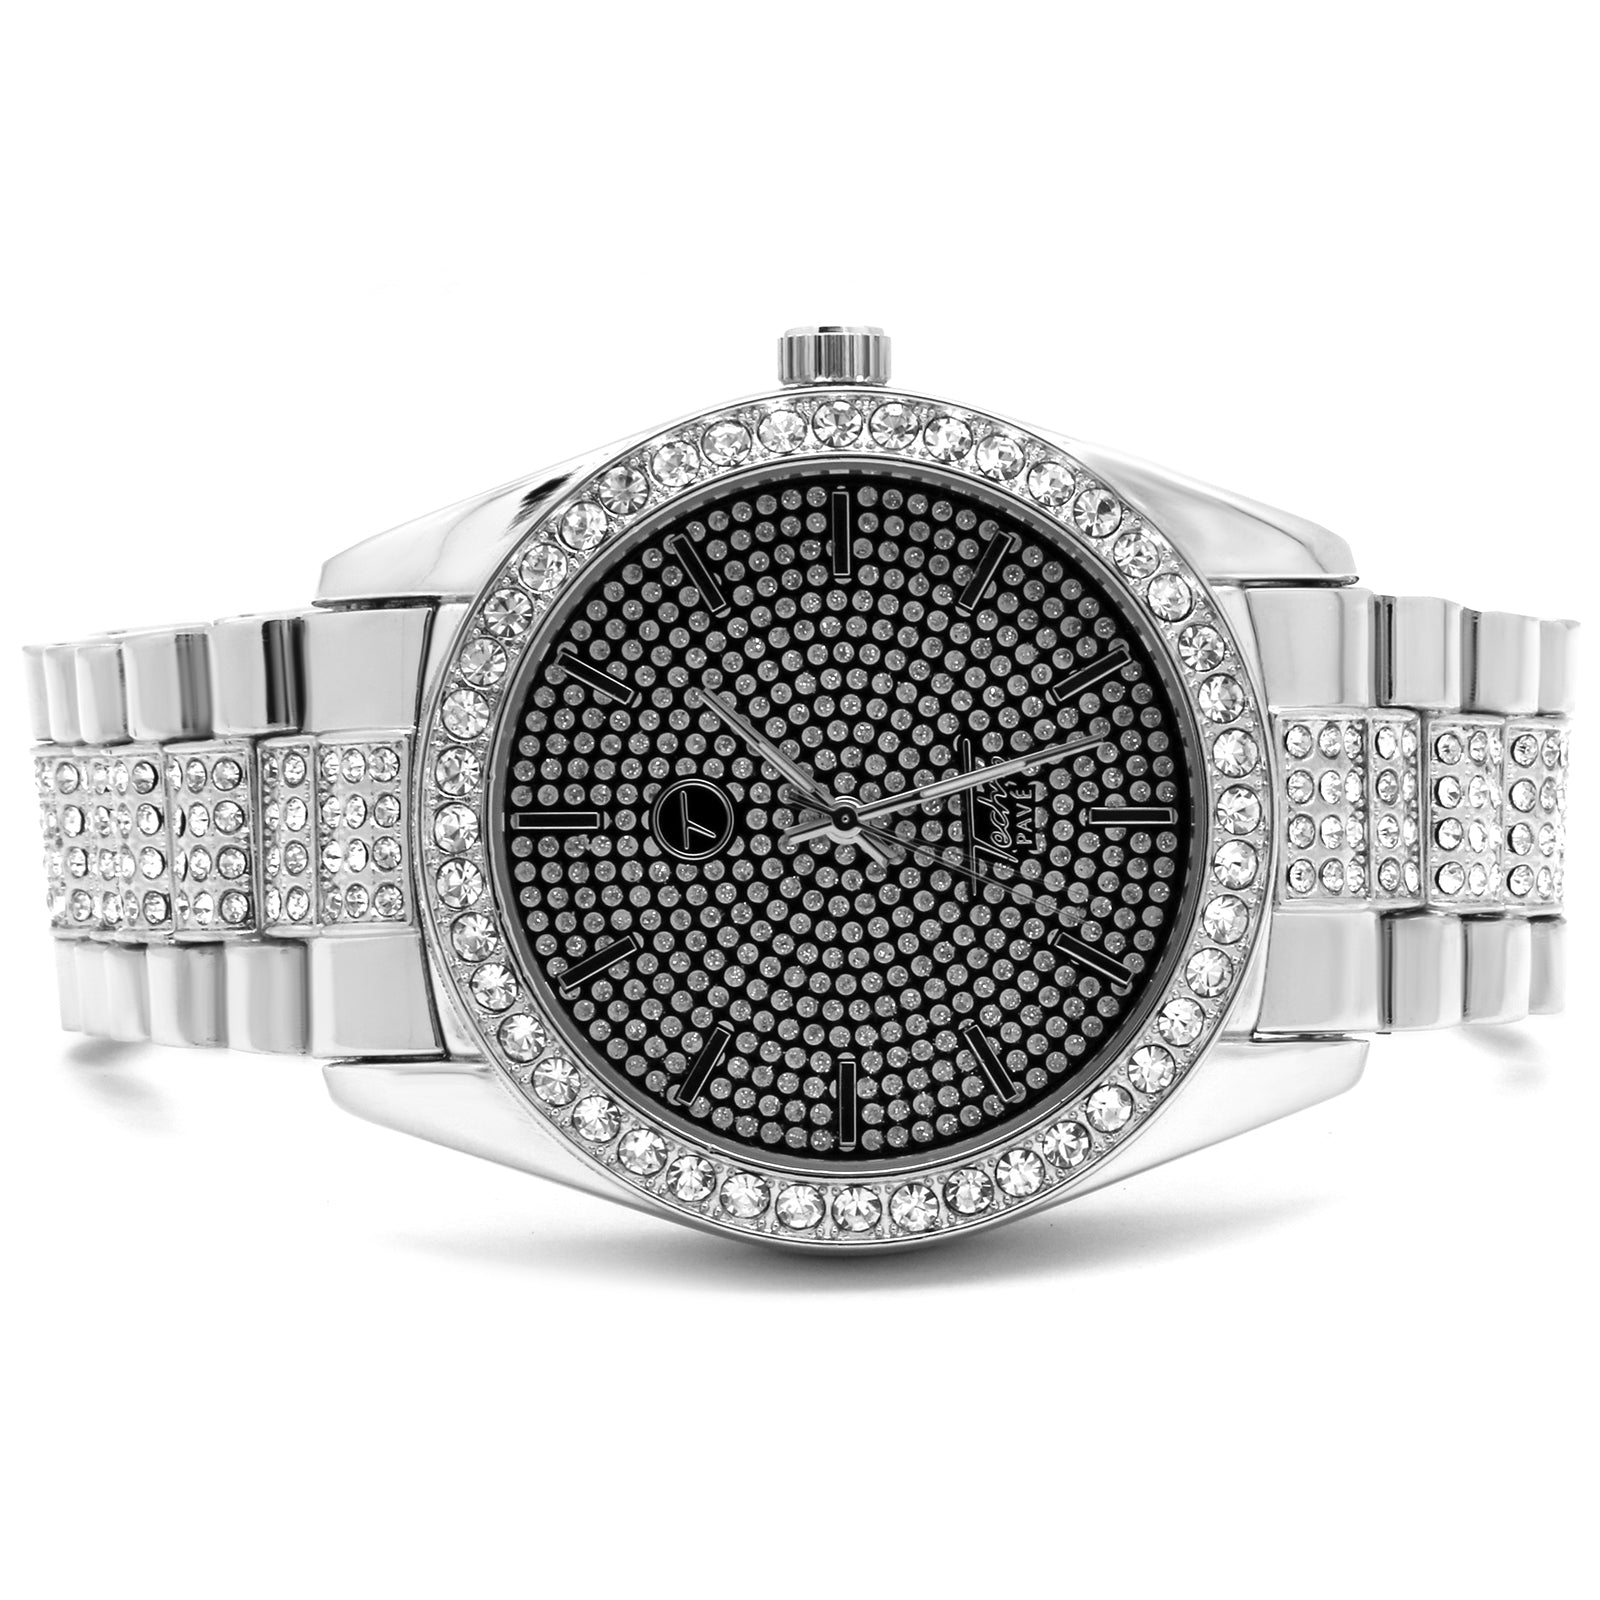 Silver Ice Out Techno Pave Rolex Style Watch